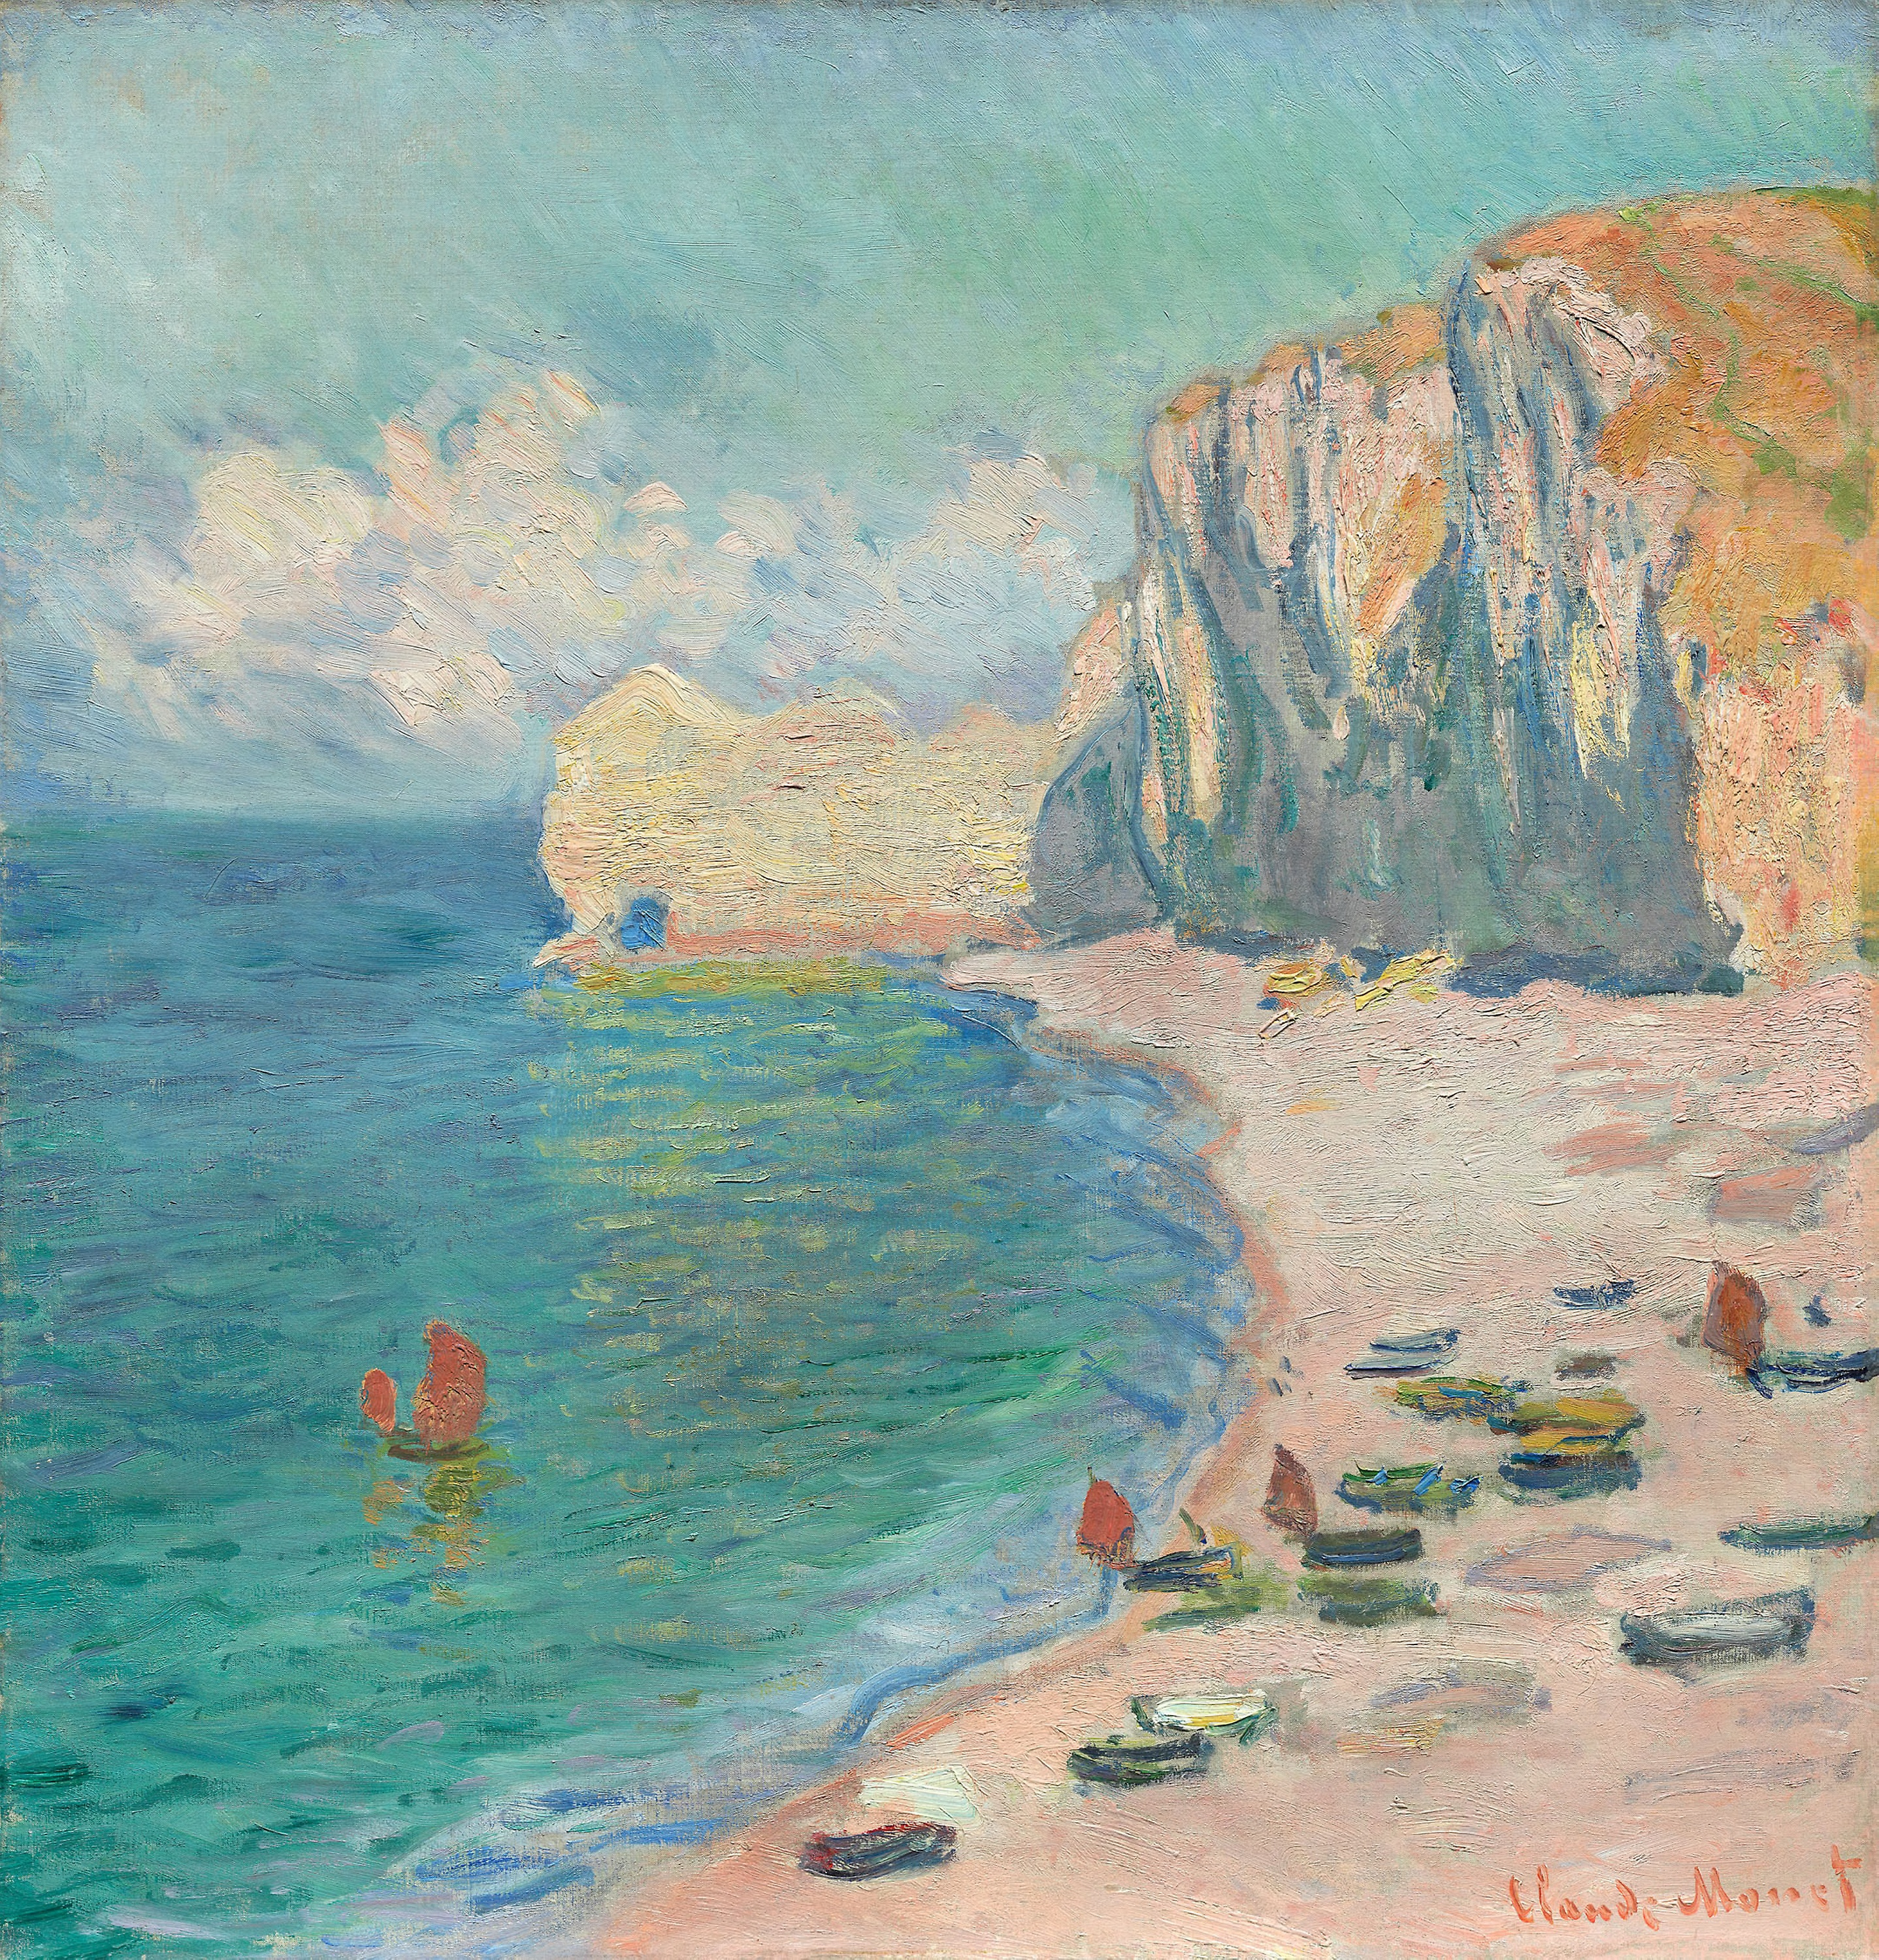 File:Claude Monet - Étretat, The Beach and the Falaise d'Amont - 1964.204 - Art Institute of Chicago.jpg - Wikimedia Commons